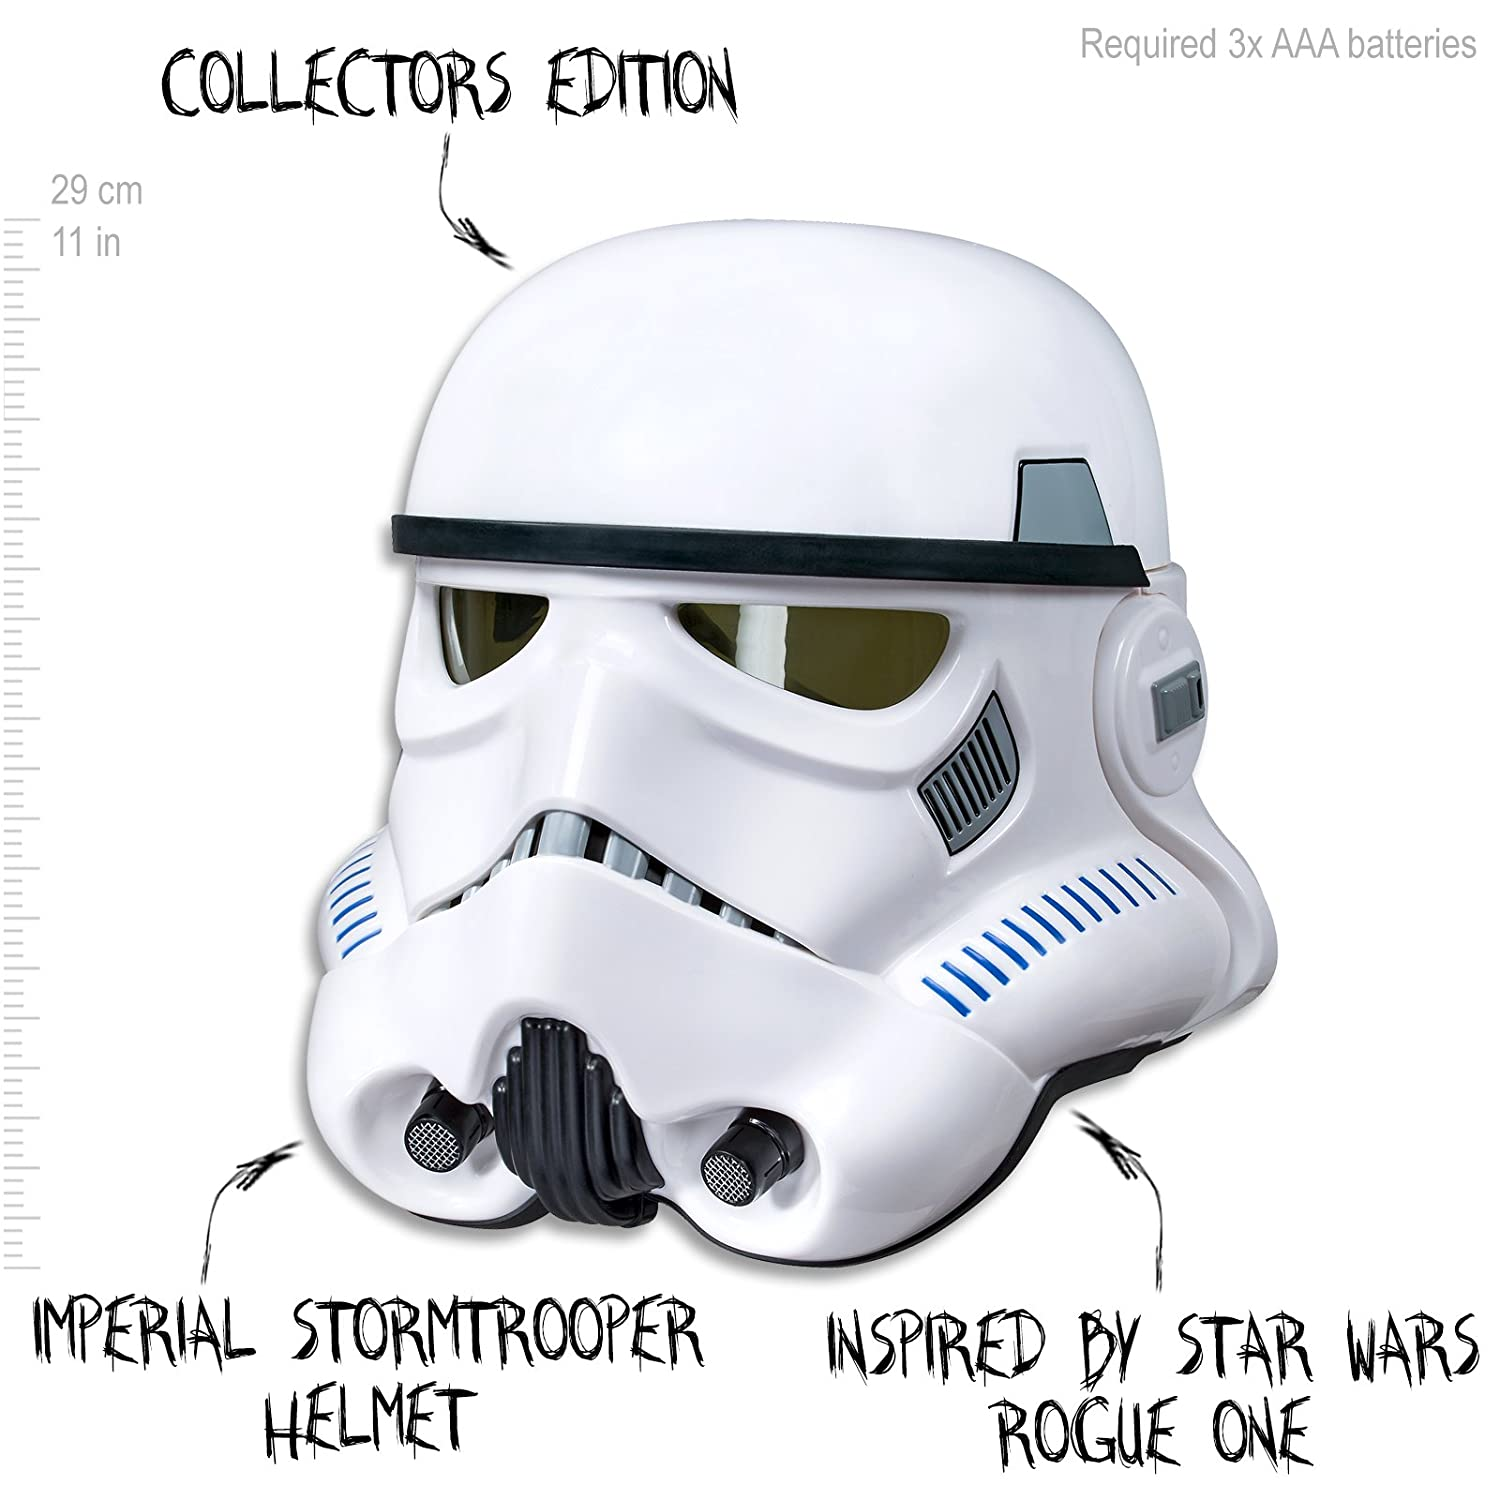 f80a0f78939 STAR WARS - Black Series - Imperial Stormtrooper Voice Changer Helmet -  Collectors Edition - Kids Dress Up Toys - Ages 8+: Amazon.com.au: Toys &  Games